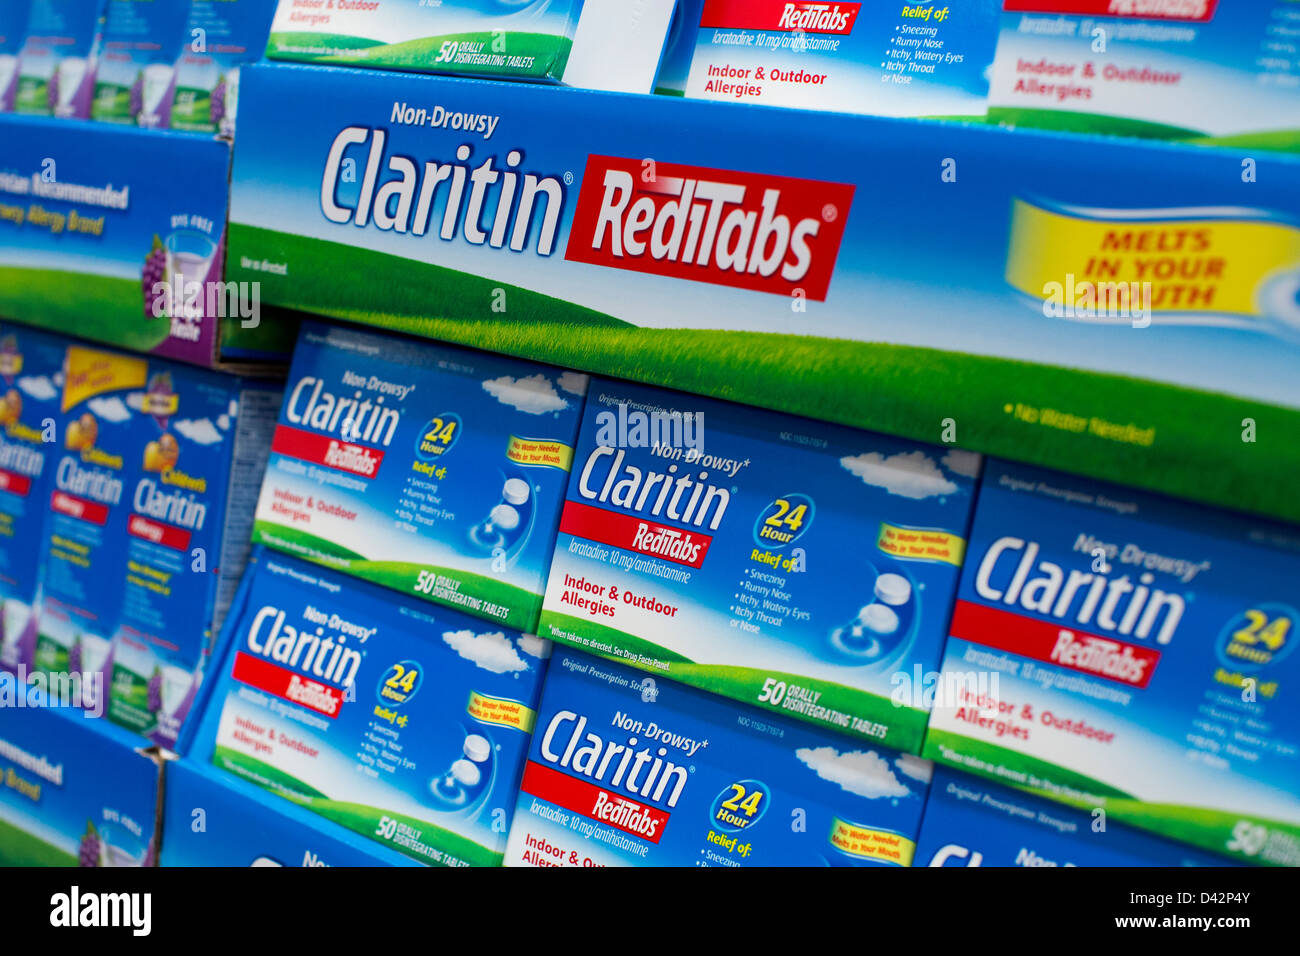 Claritin on display at a costco wholesale warehouse club stock photo claritin on display at a costco wholesale warehouse club stock photo 54151019 alamy thecheapjerseys Images